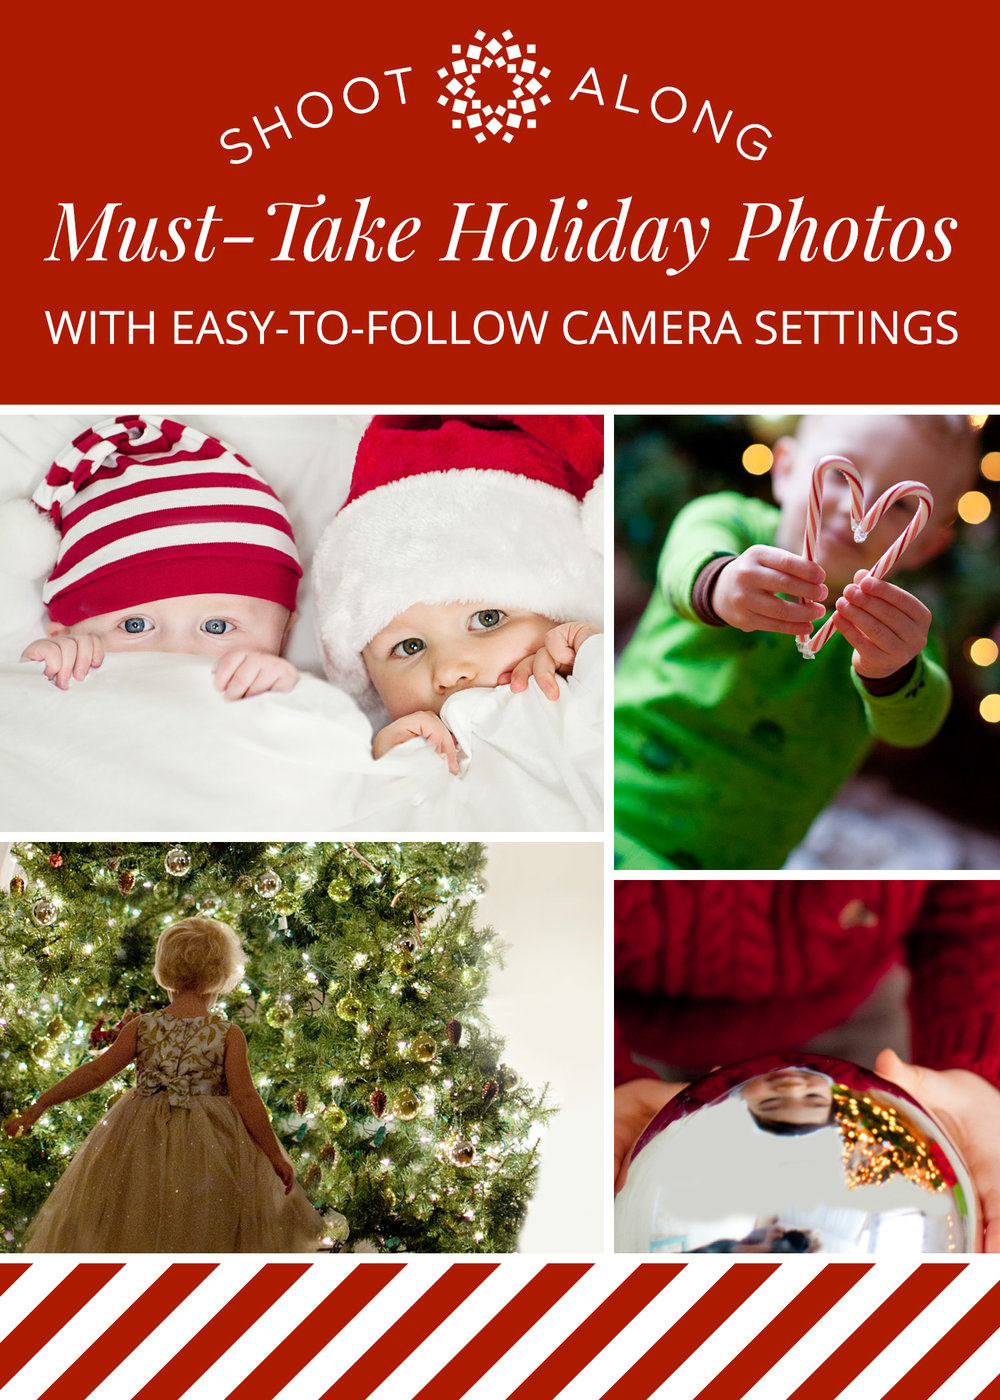 ShootAlong_Holiday_Picture_Guide-downloadimage.jpg